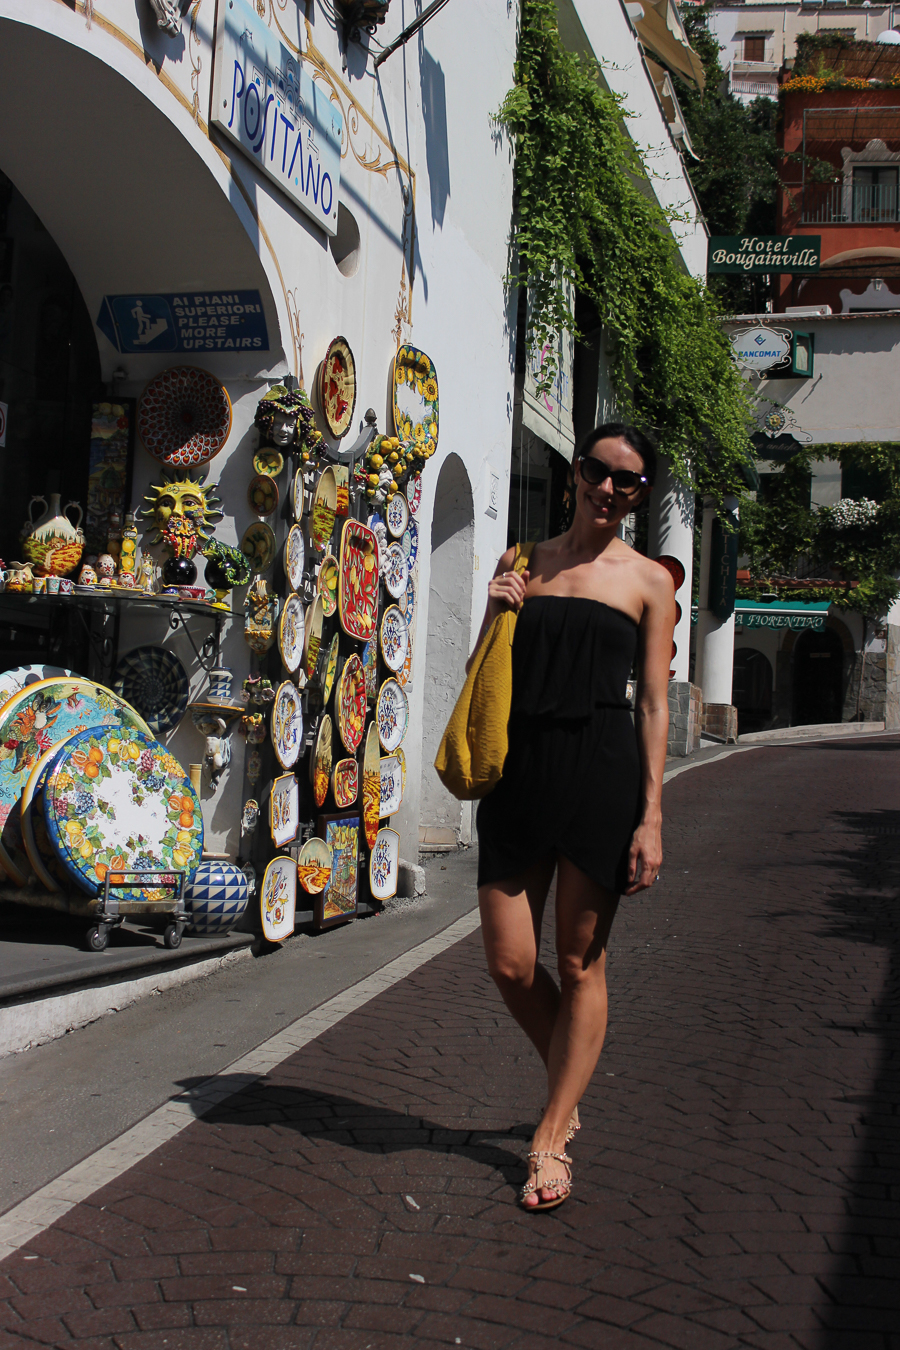 Sabrina Chakici - Clutch and Carry on - UK Fashion blogger & UK Travel Blogger - Capri Travel Blog - Capri Palace Hotel_-219